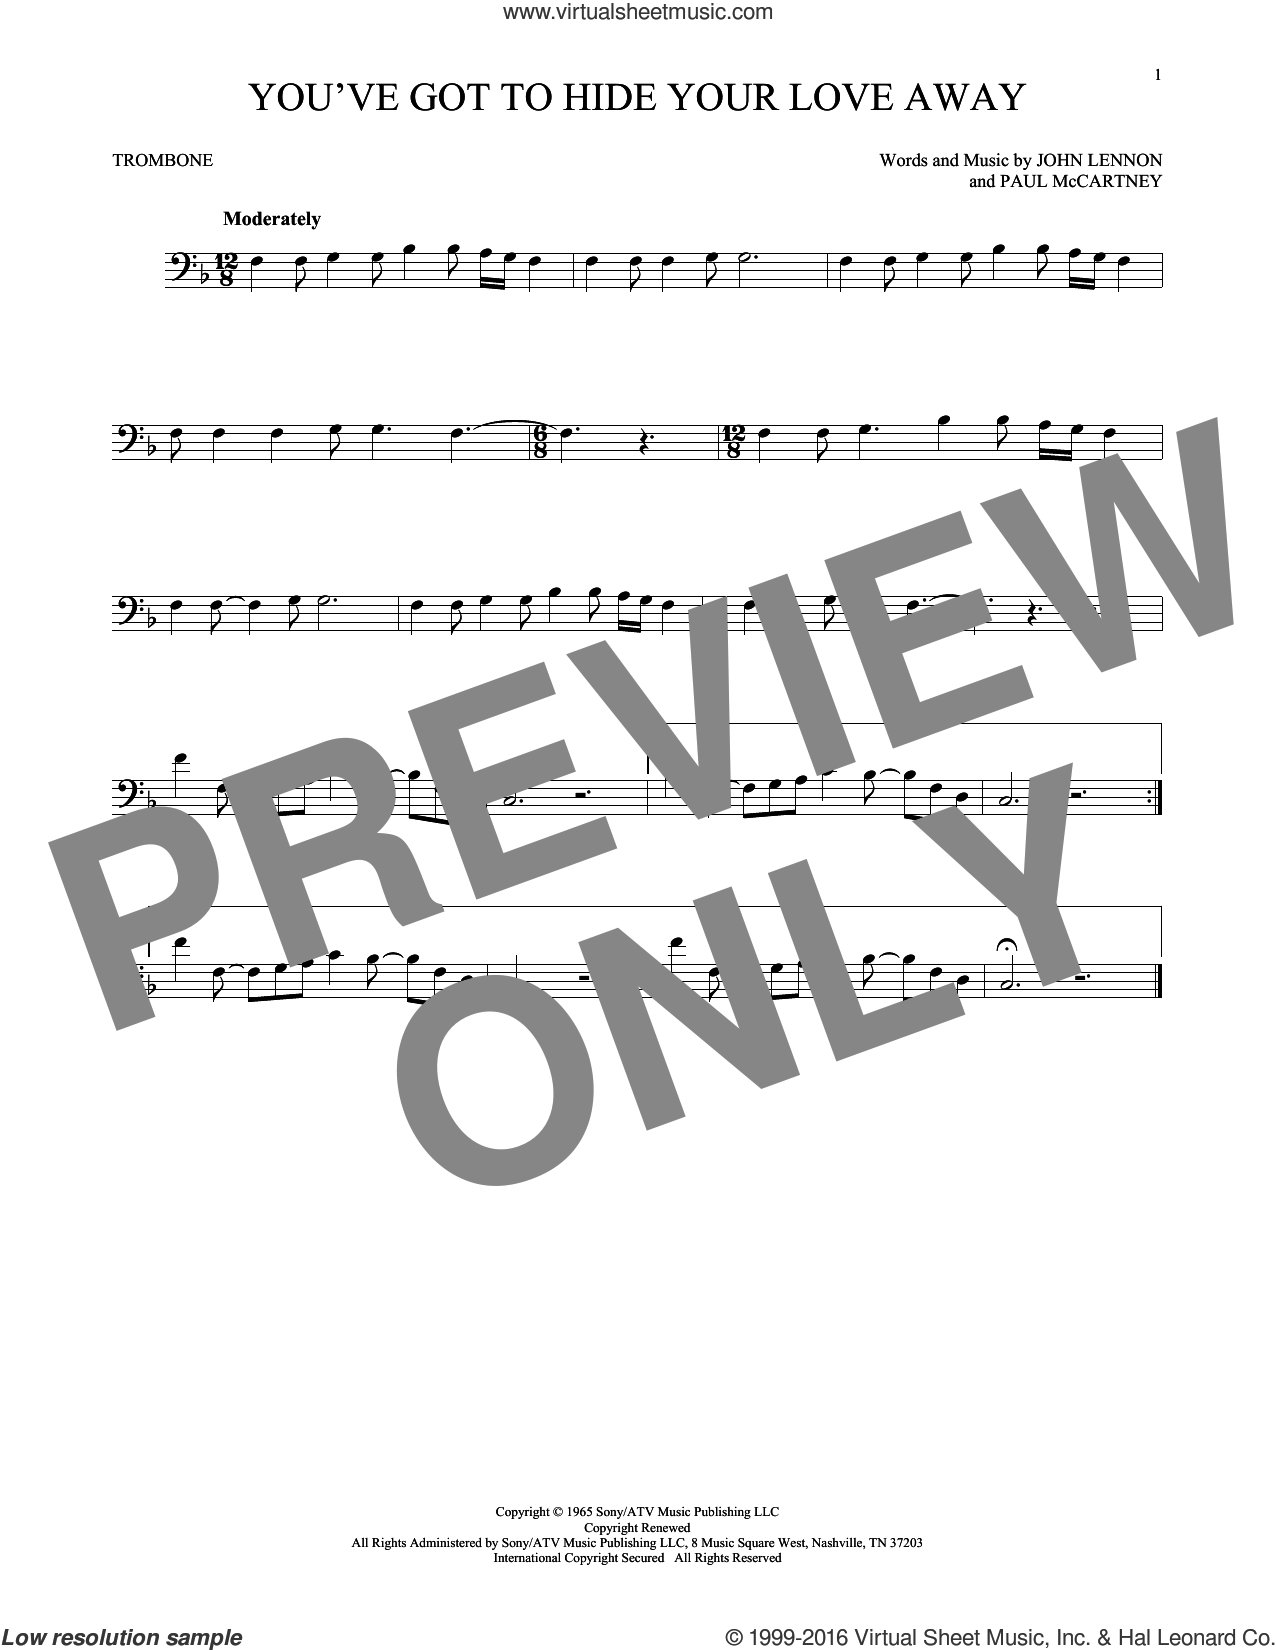 You've Got To Hide Your Love Away sheet music for trombone solo by Paul McCartney